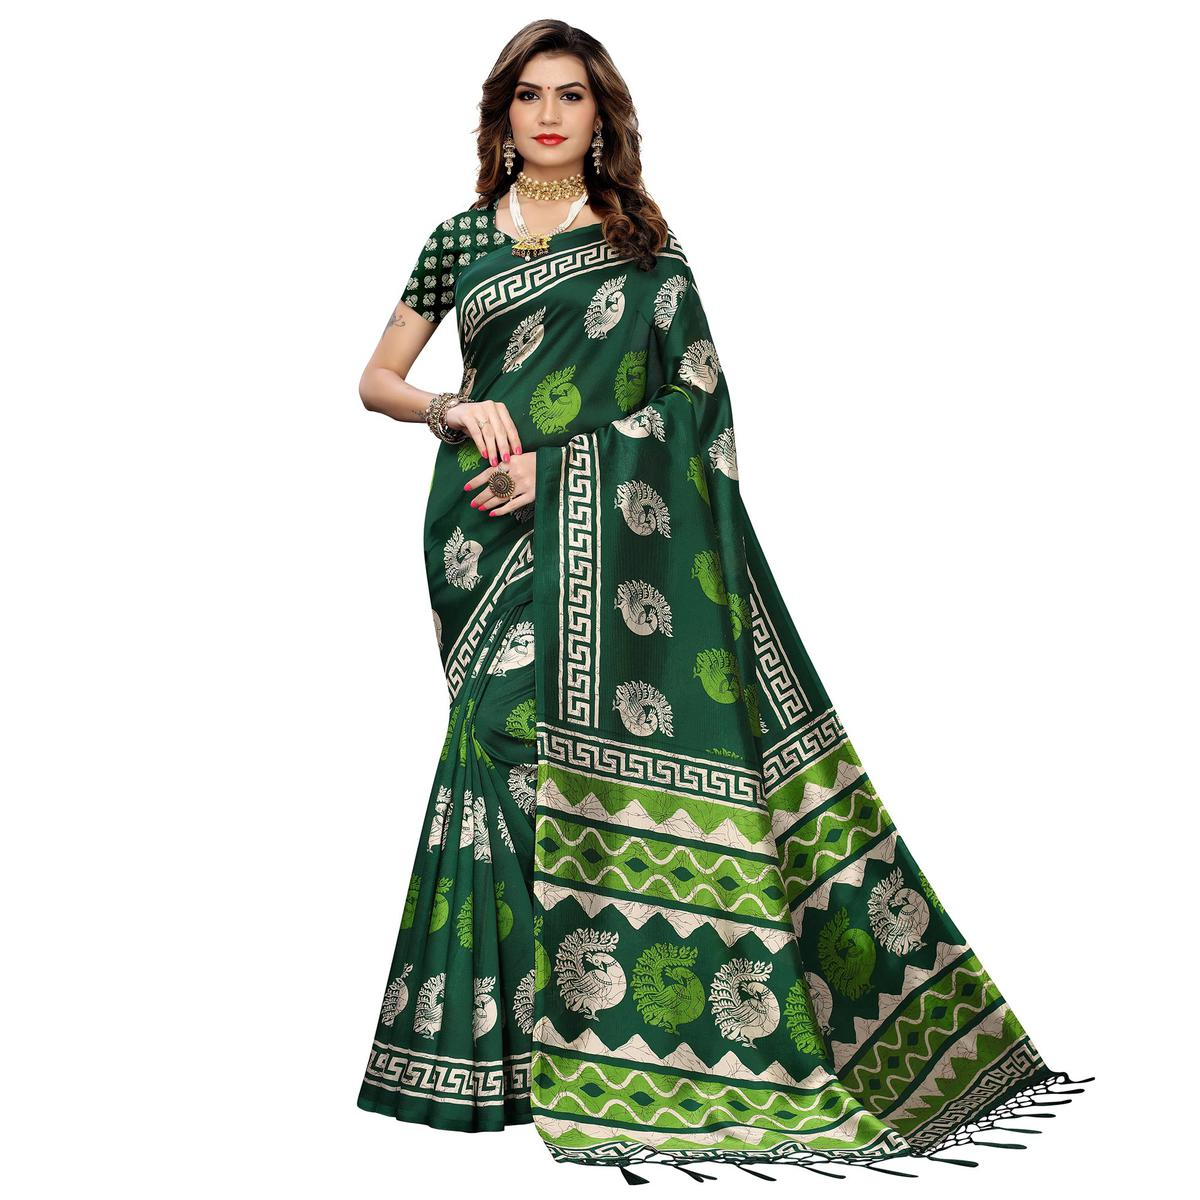 Pleasant Green Colored Casual Peacock Printed Art Silk Saree With Tassels